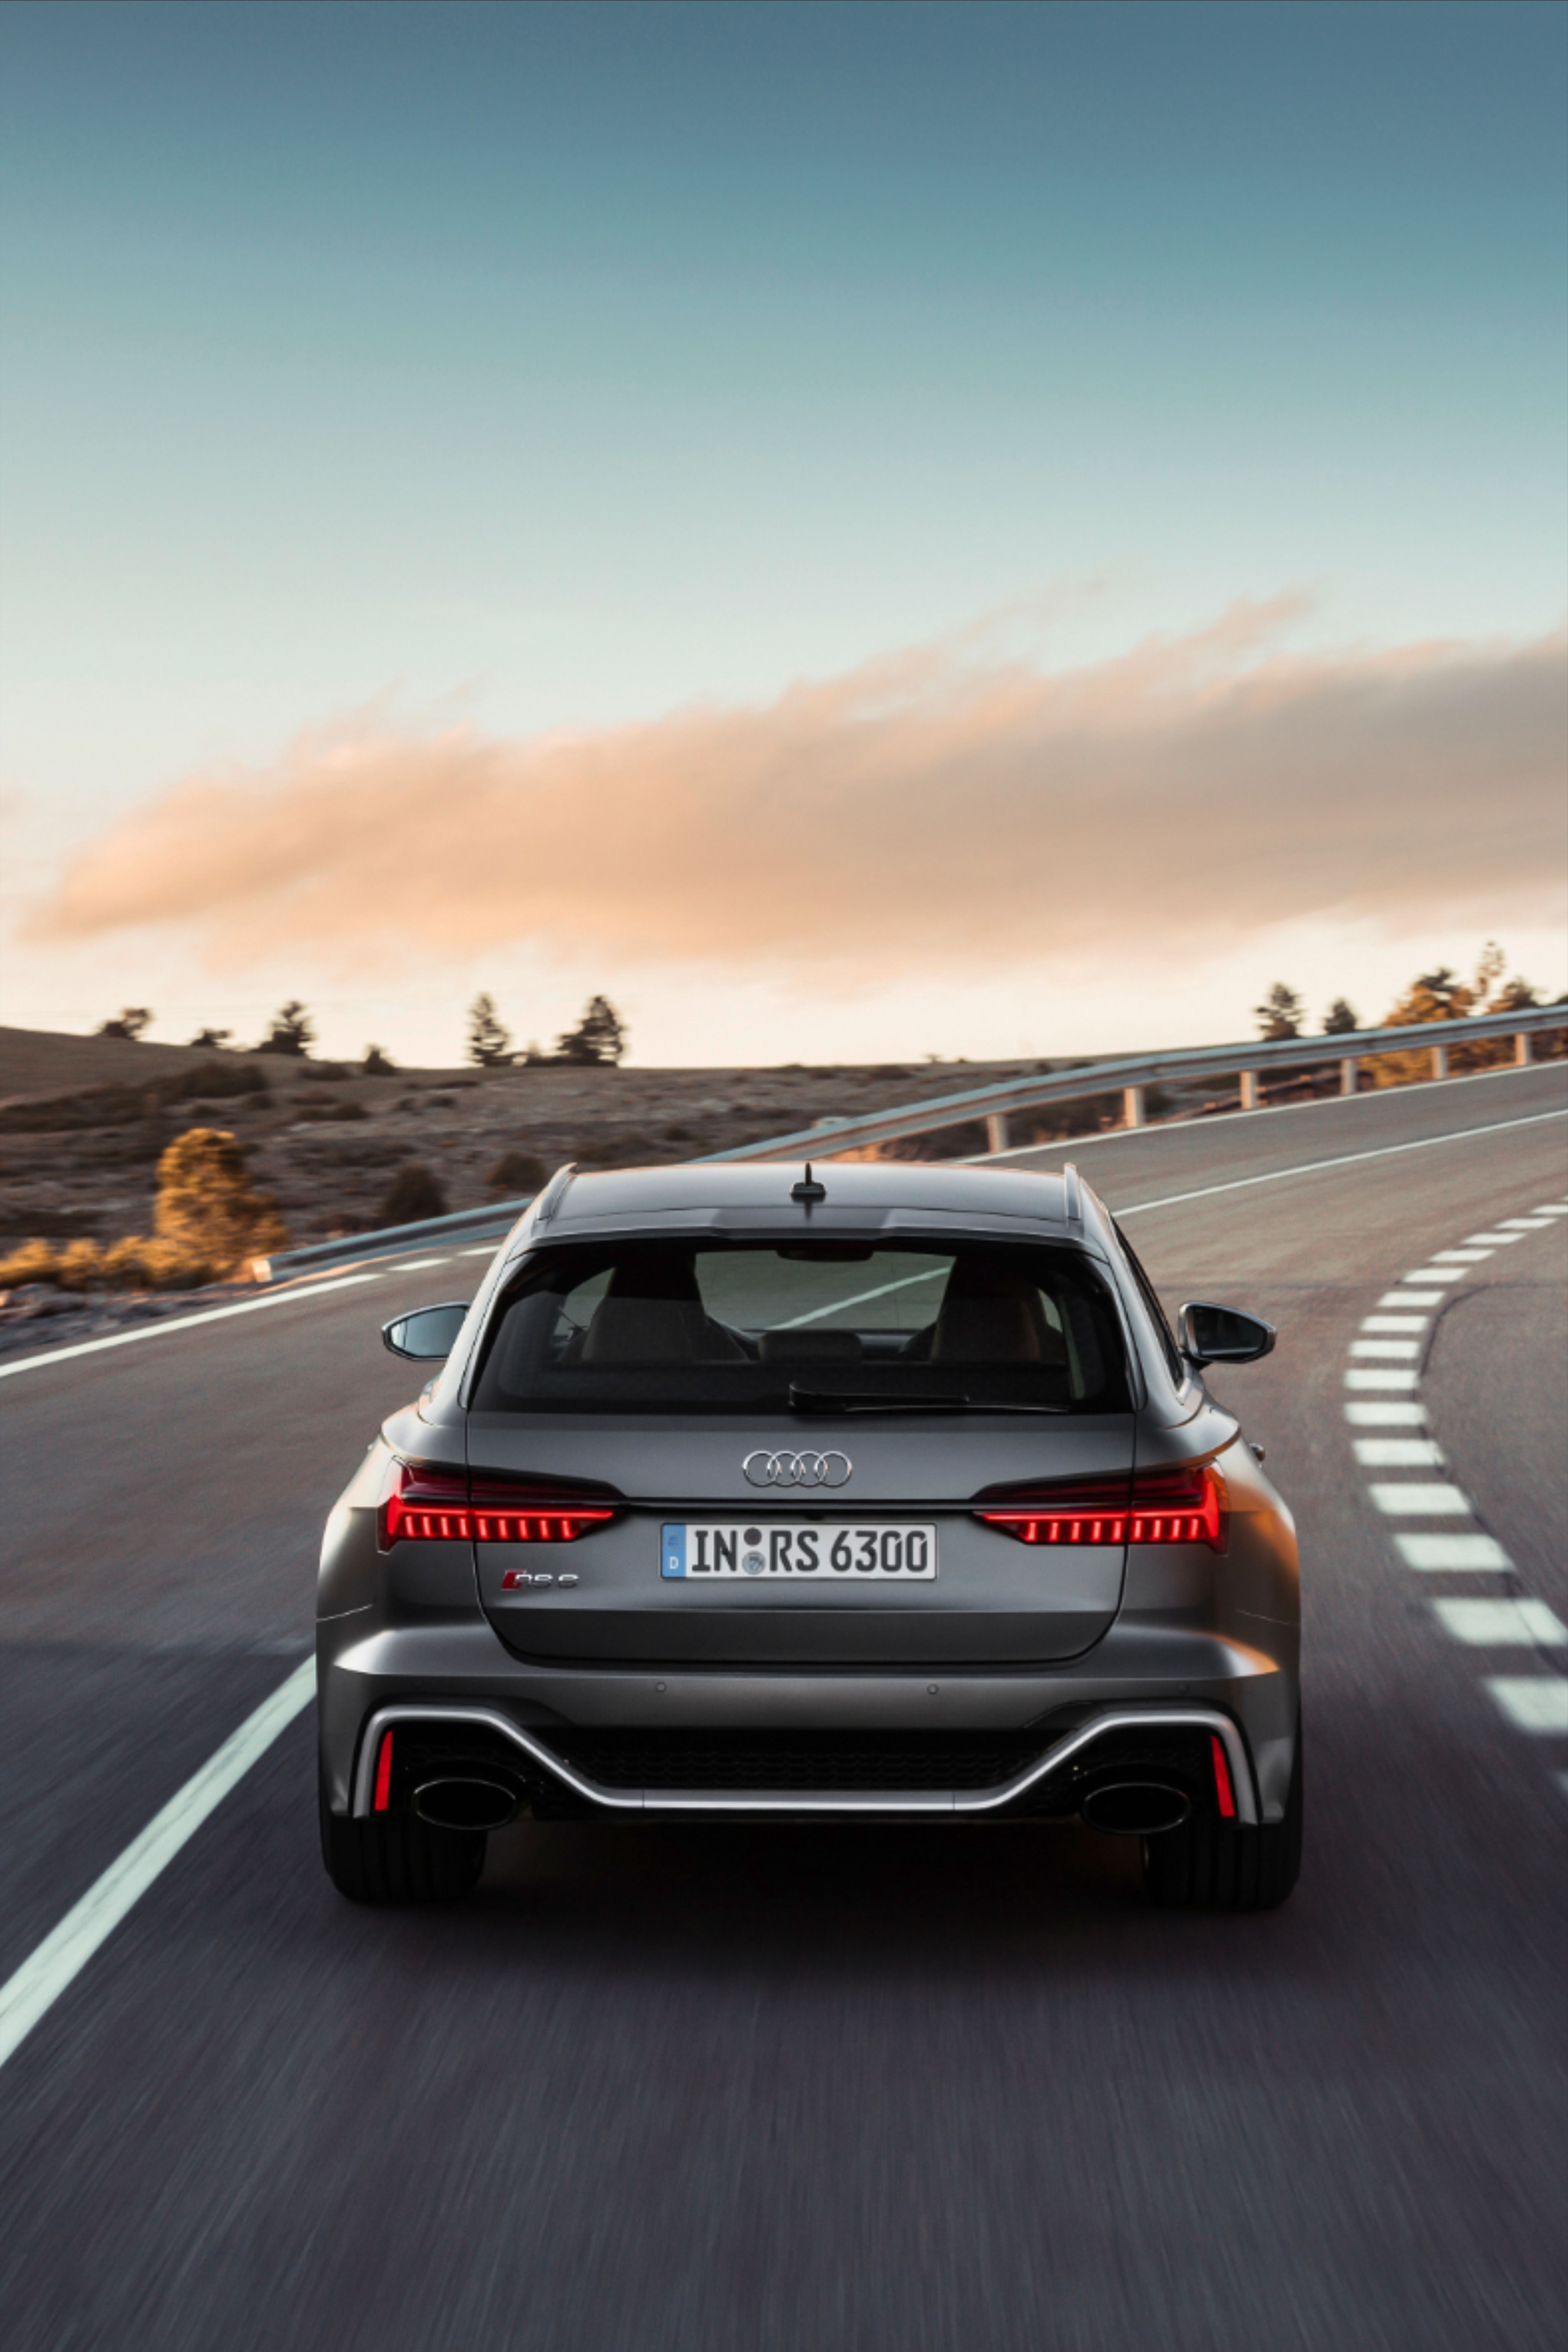 Audi Rs 6 Wallpapers Rennsport